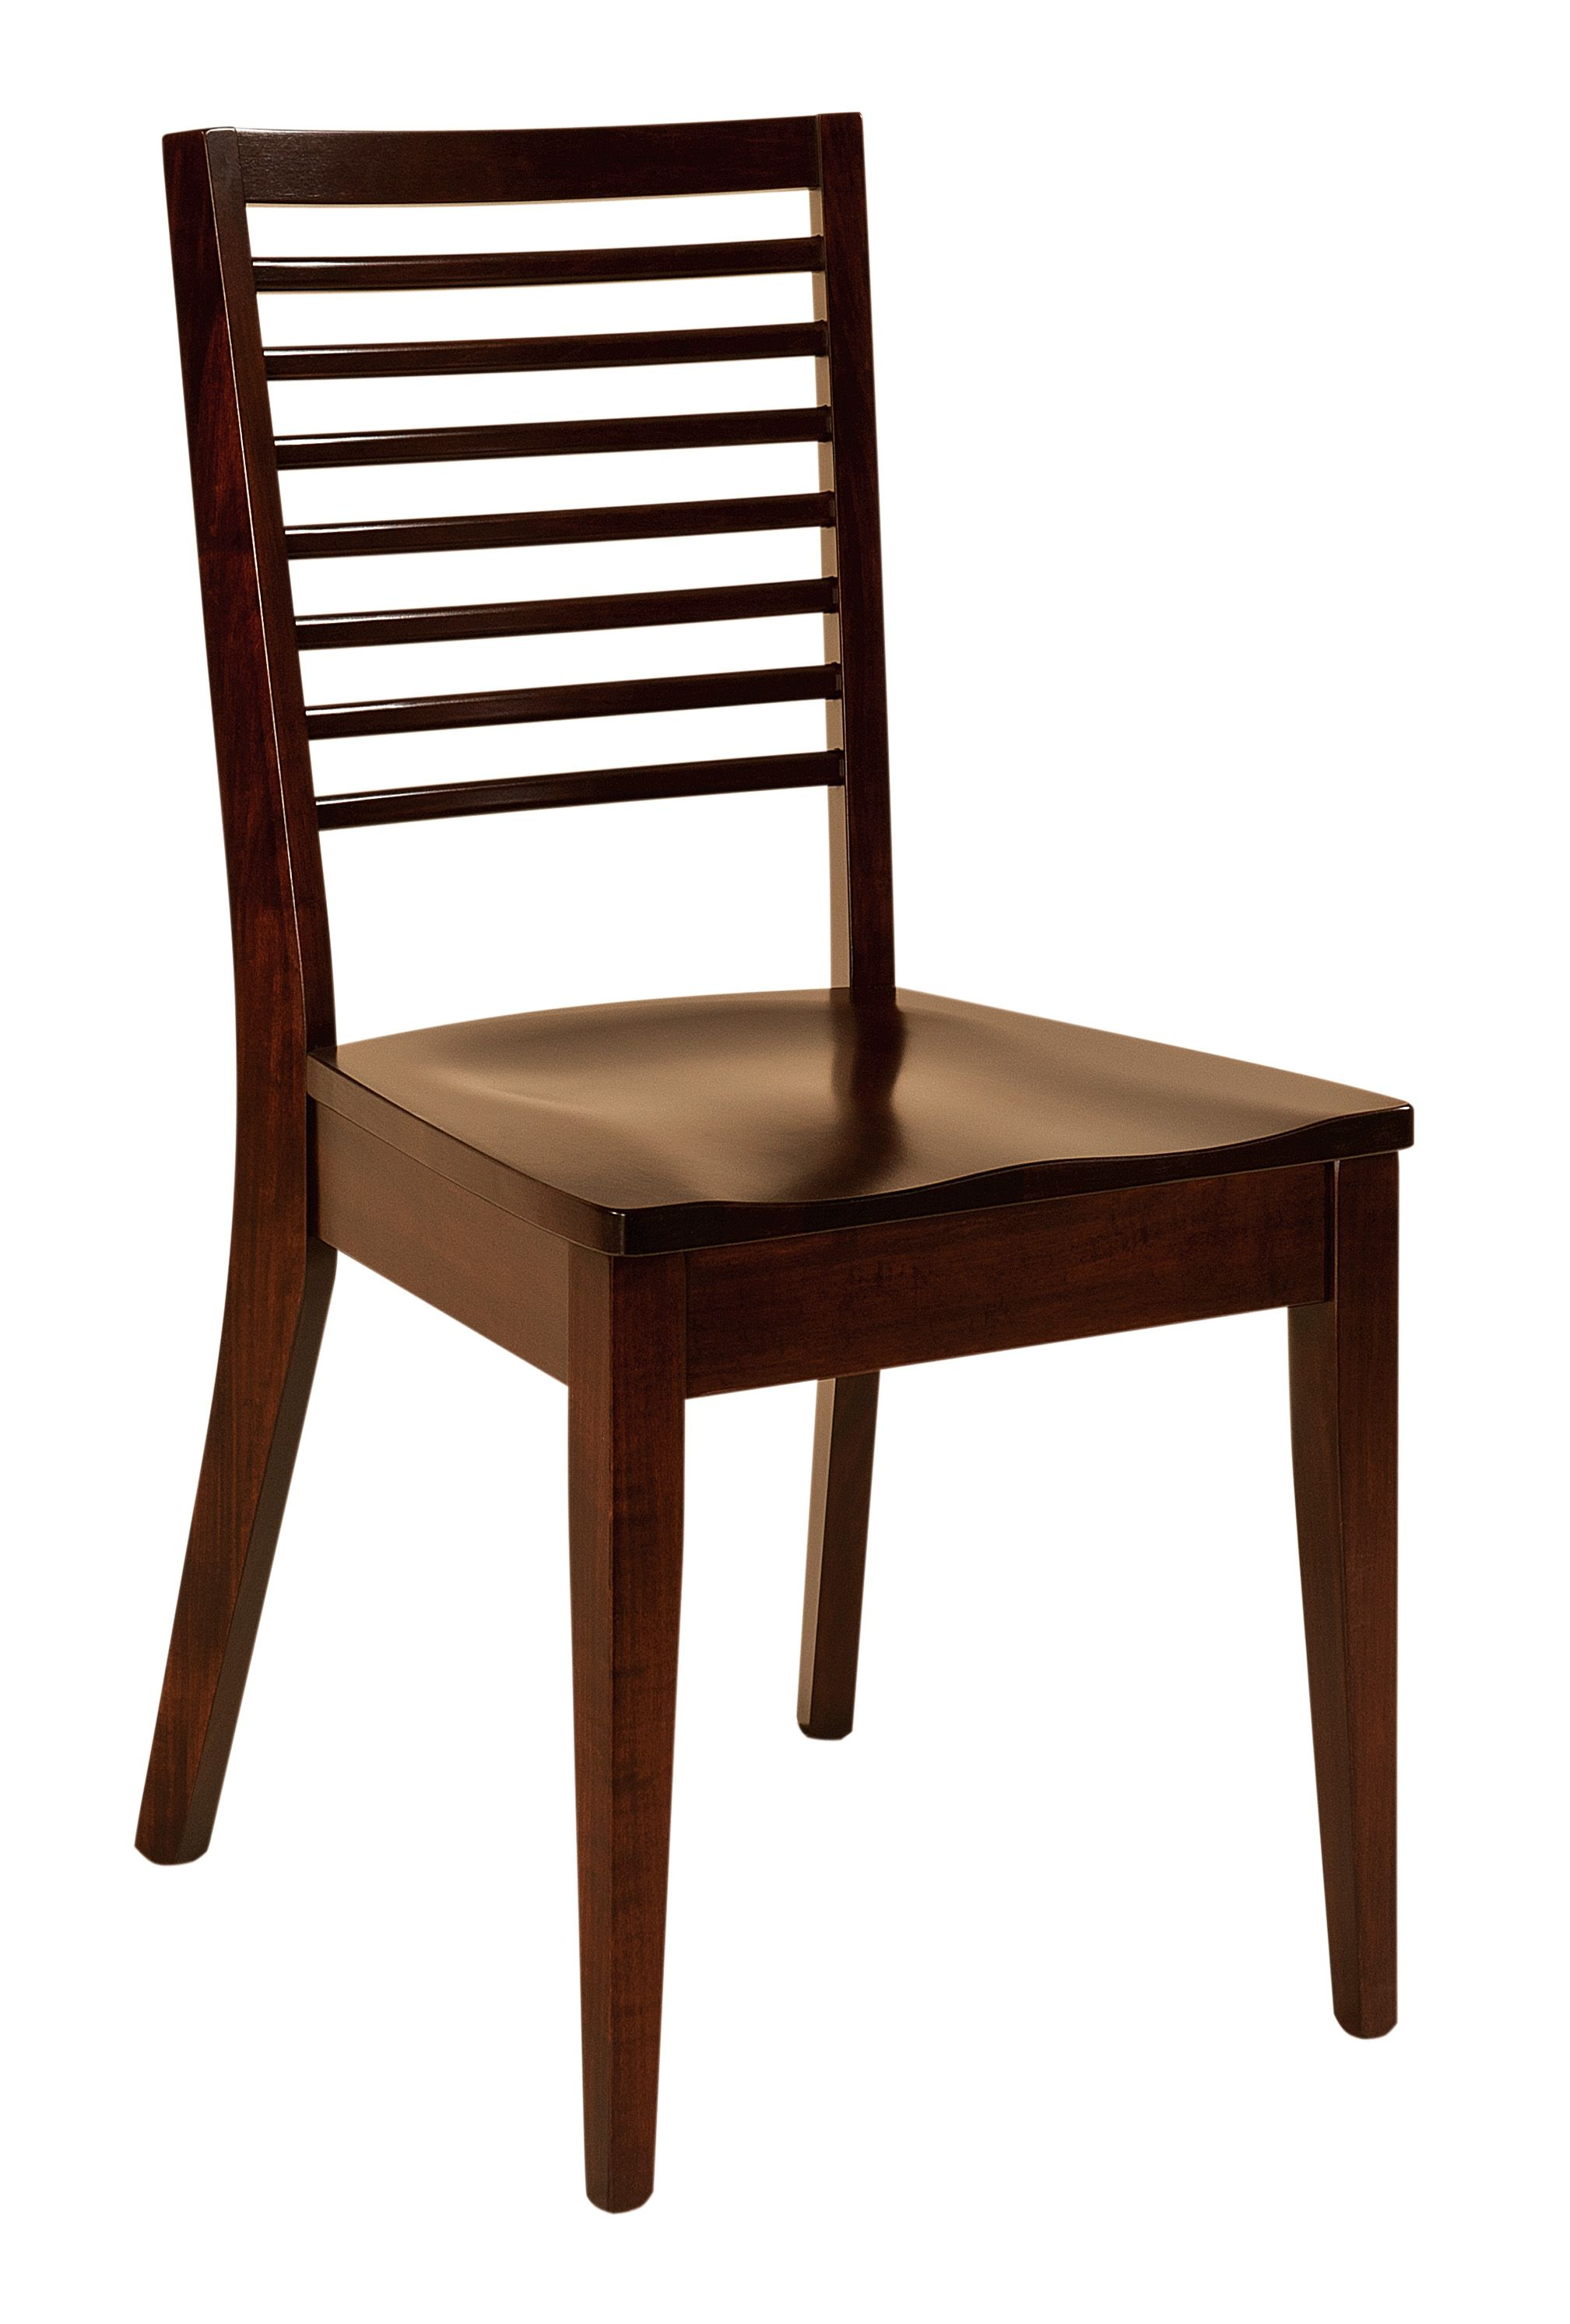 The Bancroft dining chair is shown in Brown Maple The Bancroft